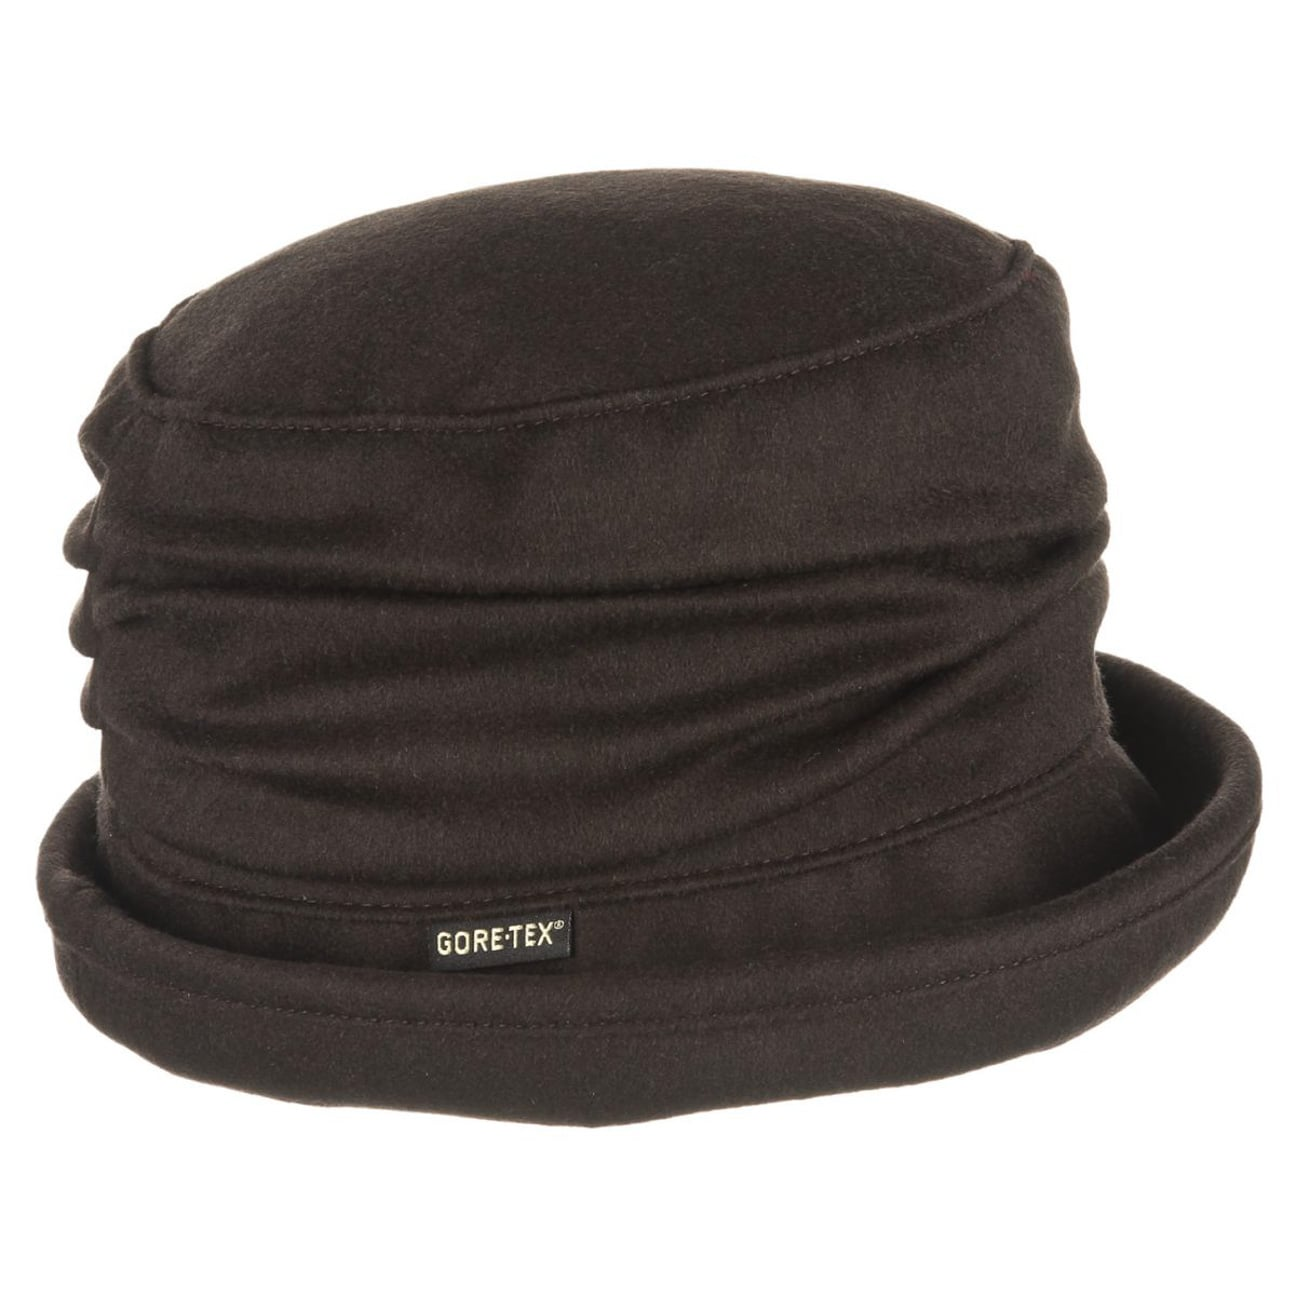 4ba37a27381 ... Seeberger 2 · Gore-Tex Cloche for Women by Seeberger - brown 1 ...